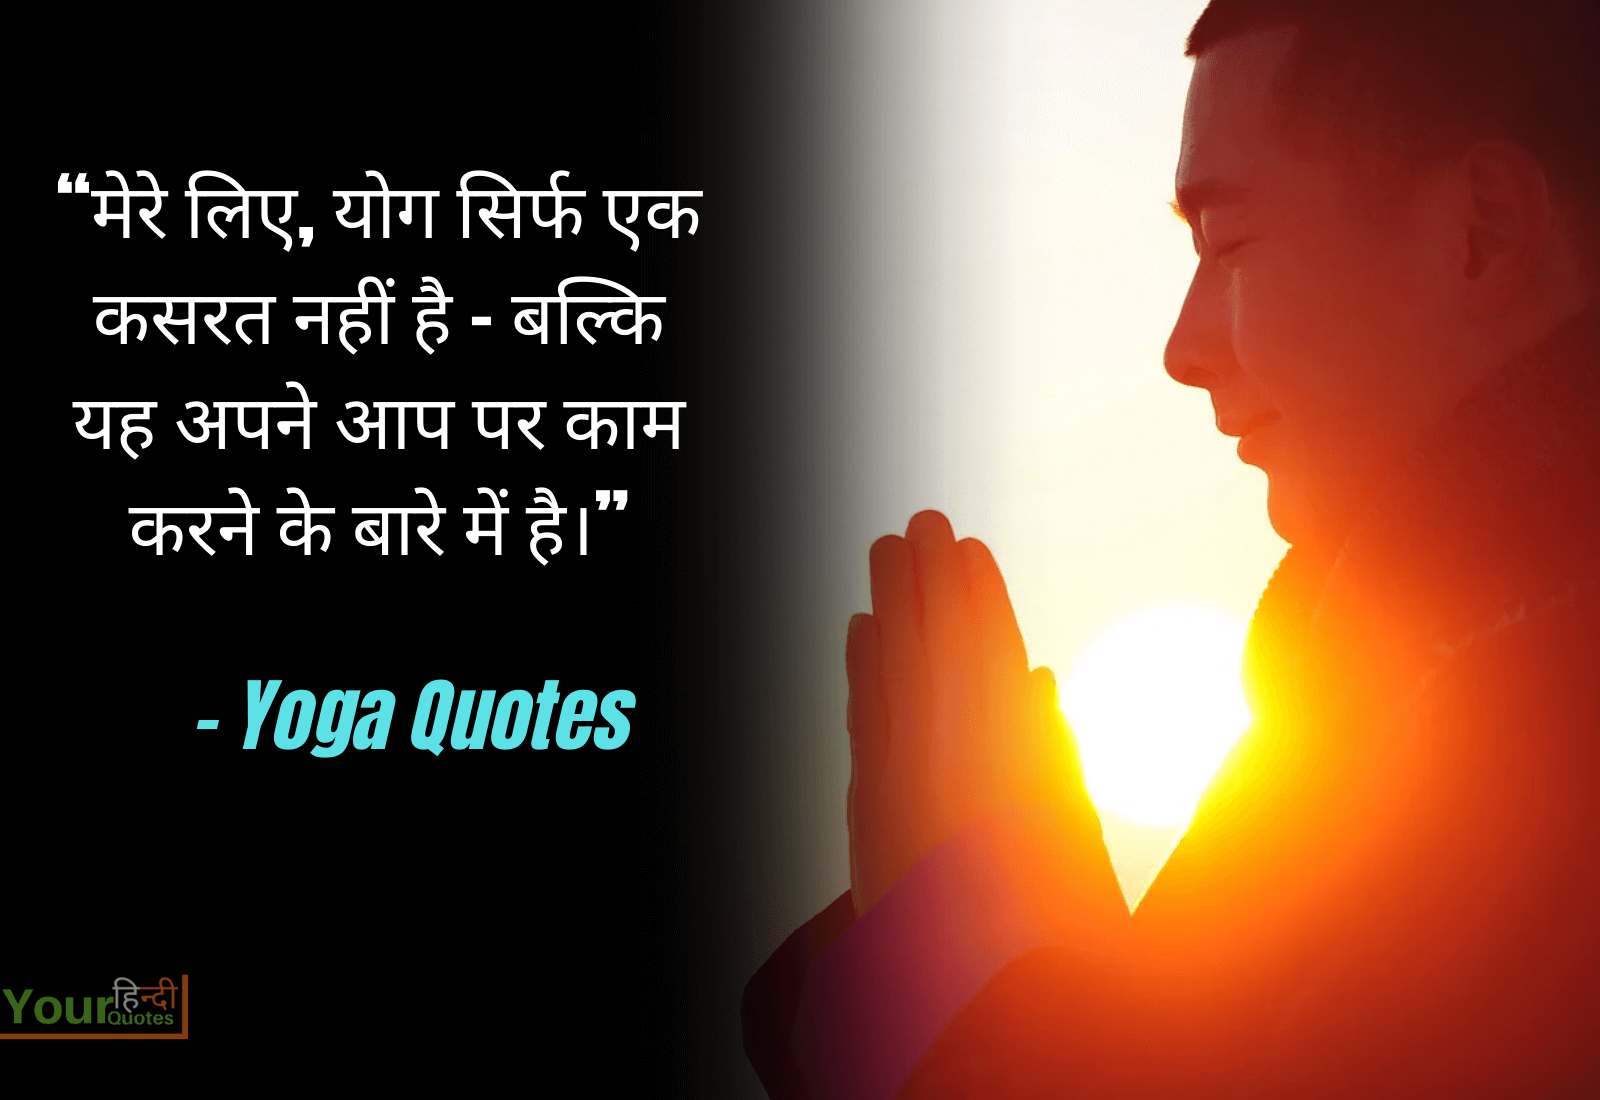 Hindi Yoga Quote Photo